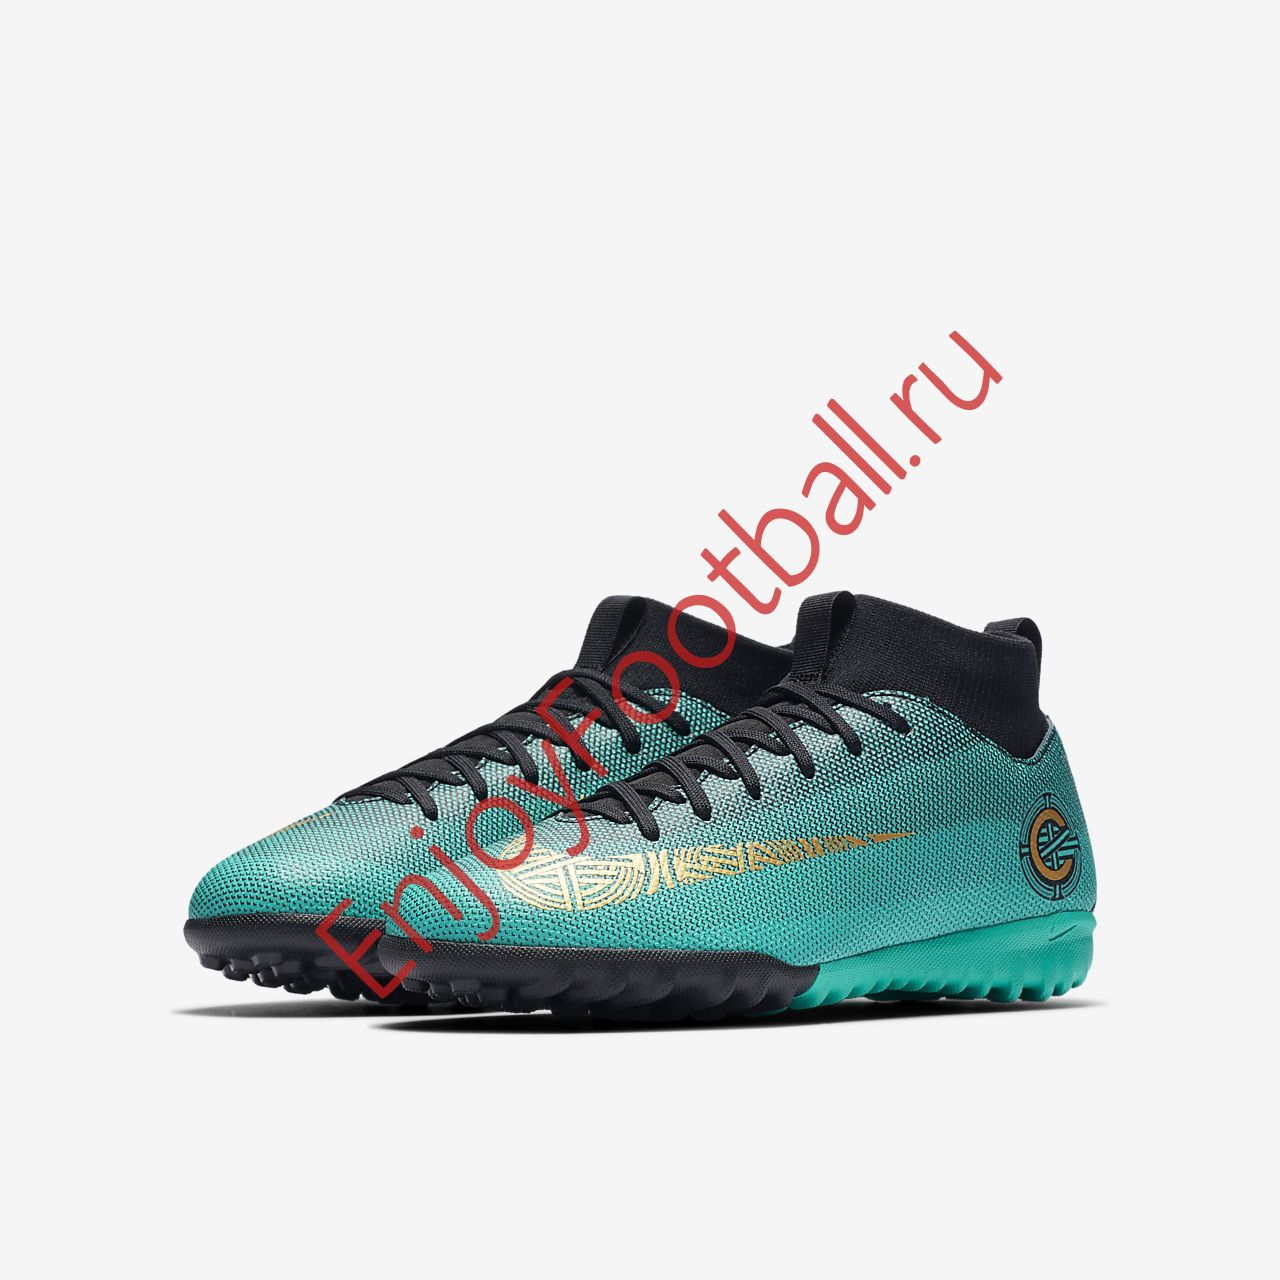 ee076e9a Детские сороконожки NIKE MERCURIALX SUPERFLY VI ACADEMY GS CR7 TF  AJ3112-390 JR